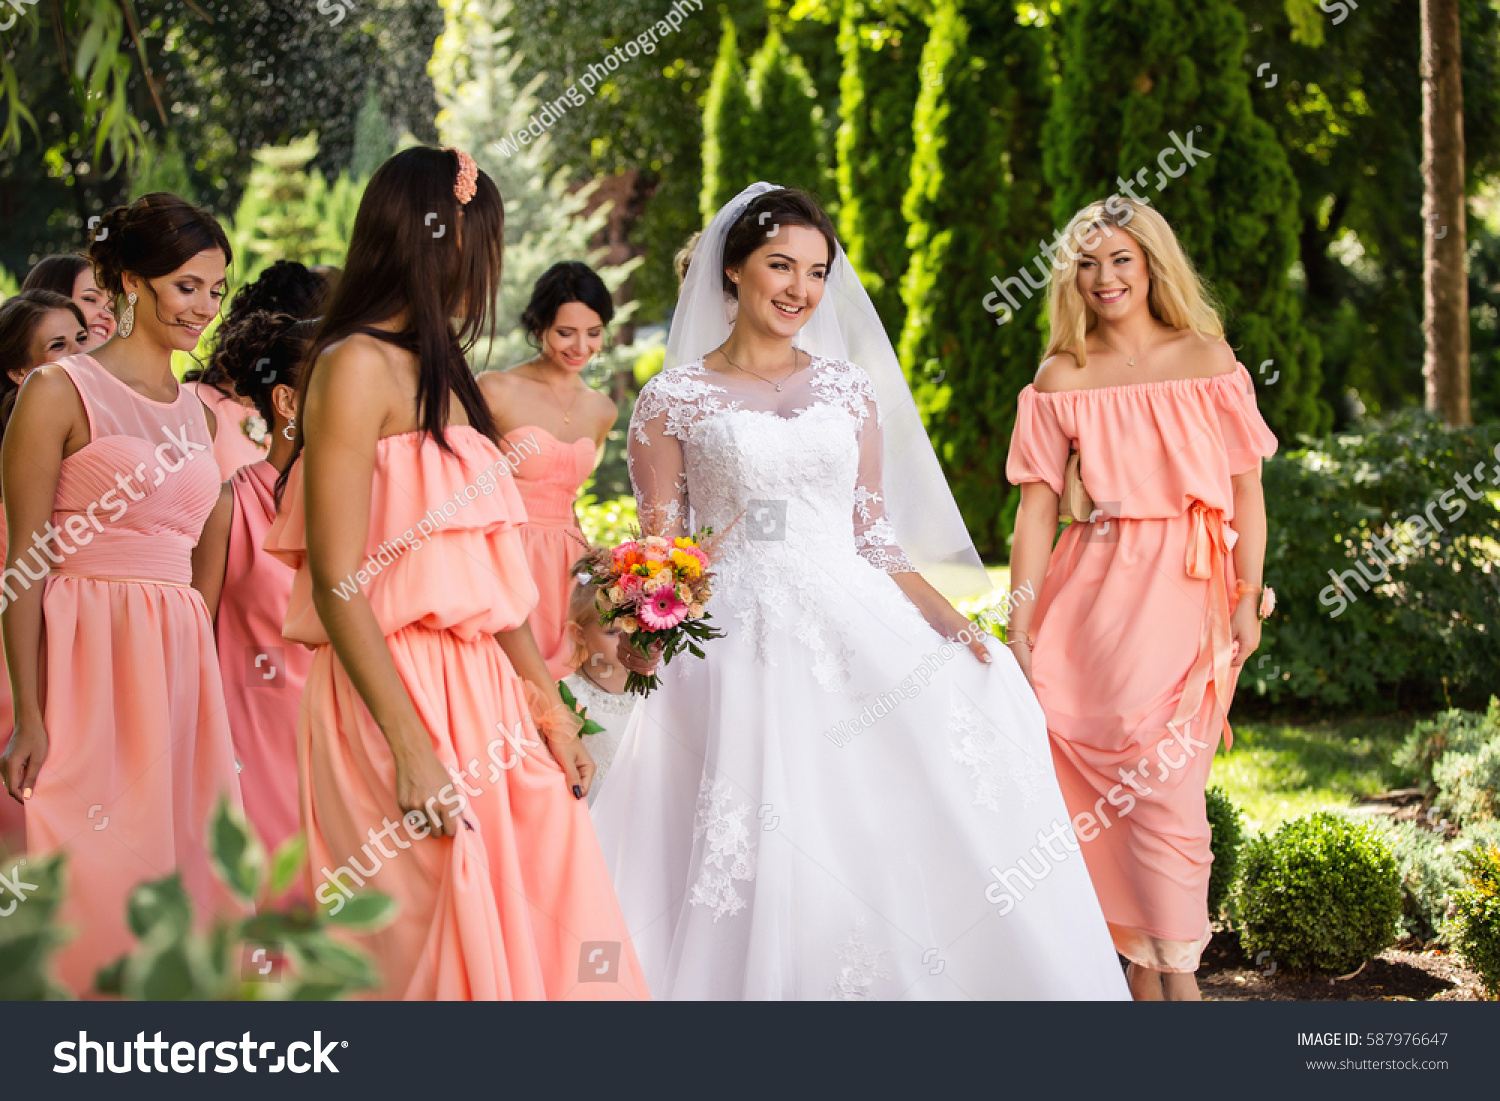 Songs For Bridesmaids To Walk Out To: Beautiful Bride Her Friends Bridesmaids Having Stock Photo